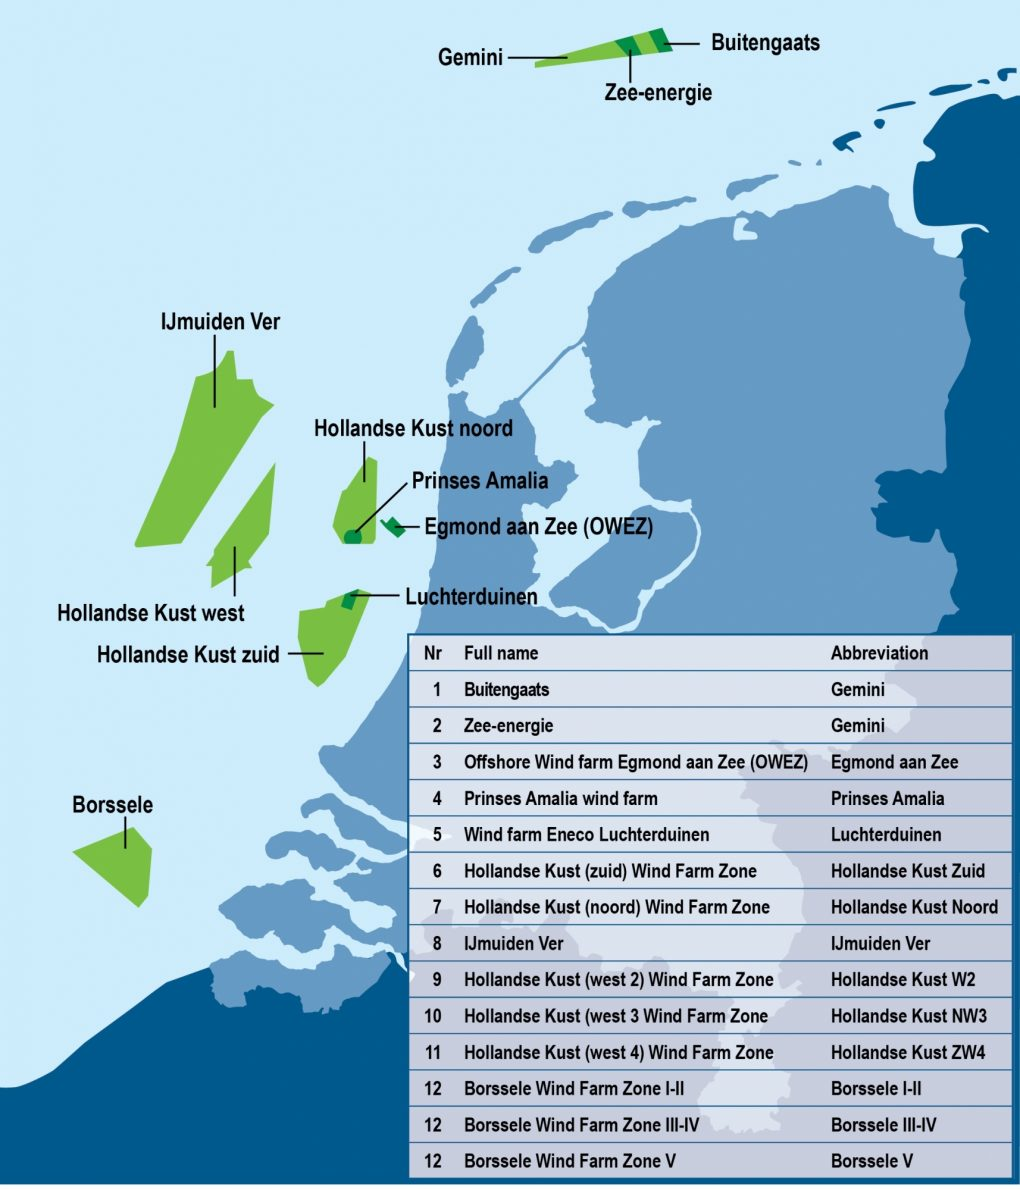 Options for biodiversity enhancement in offshore wind farms